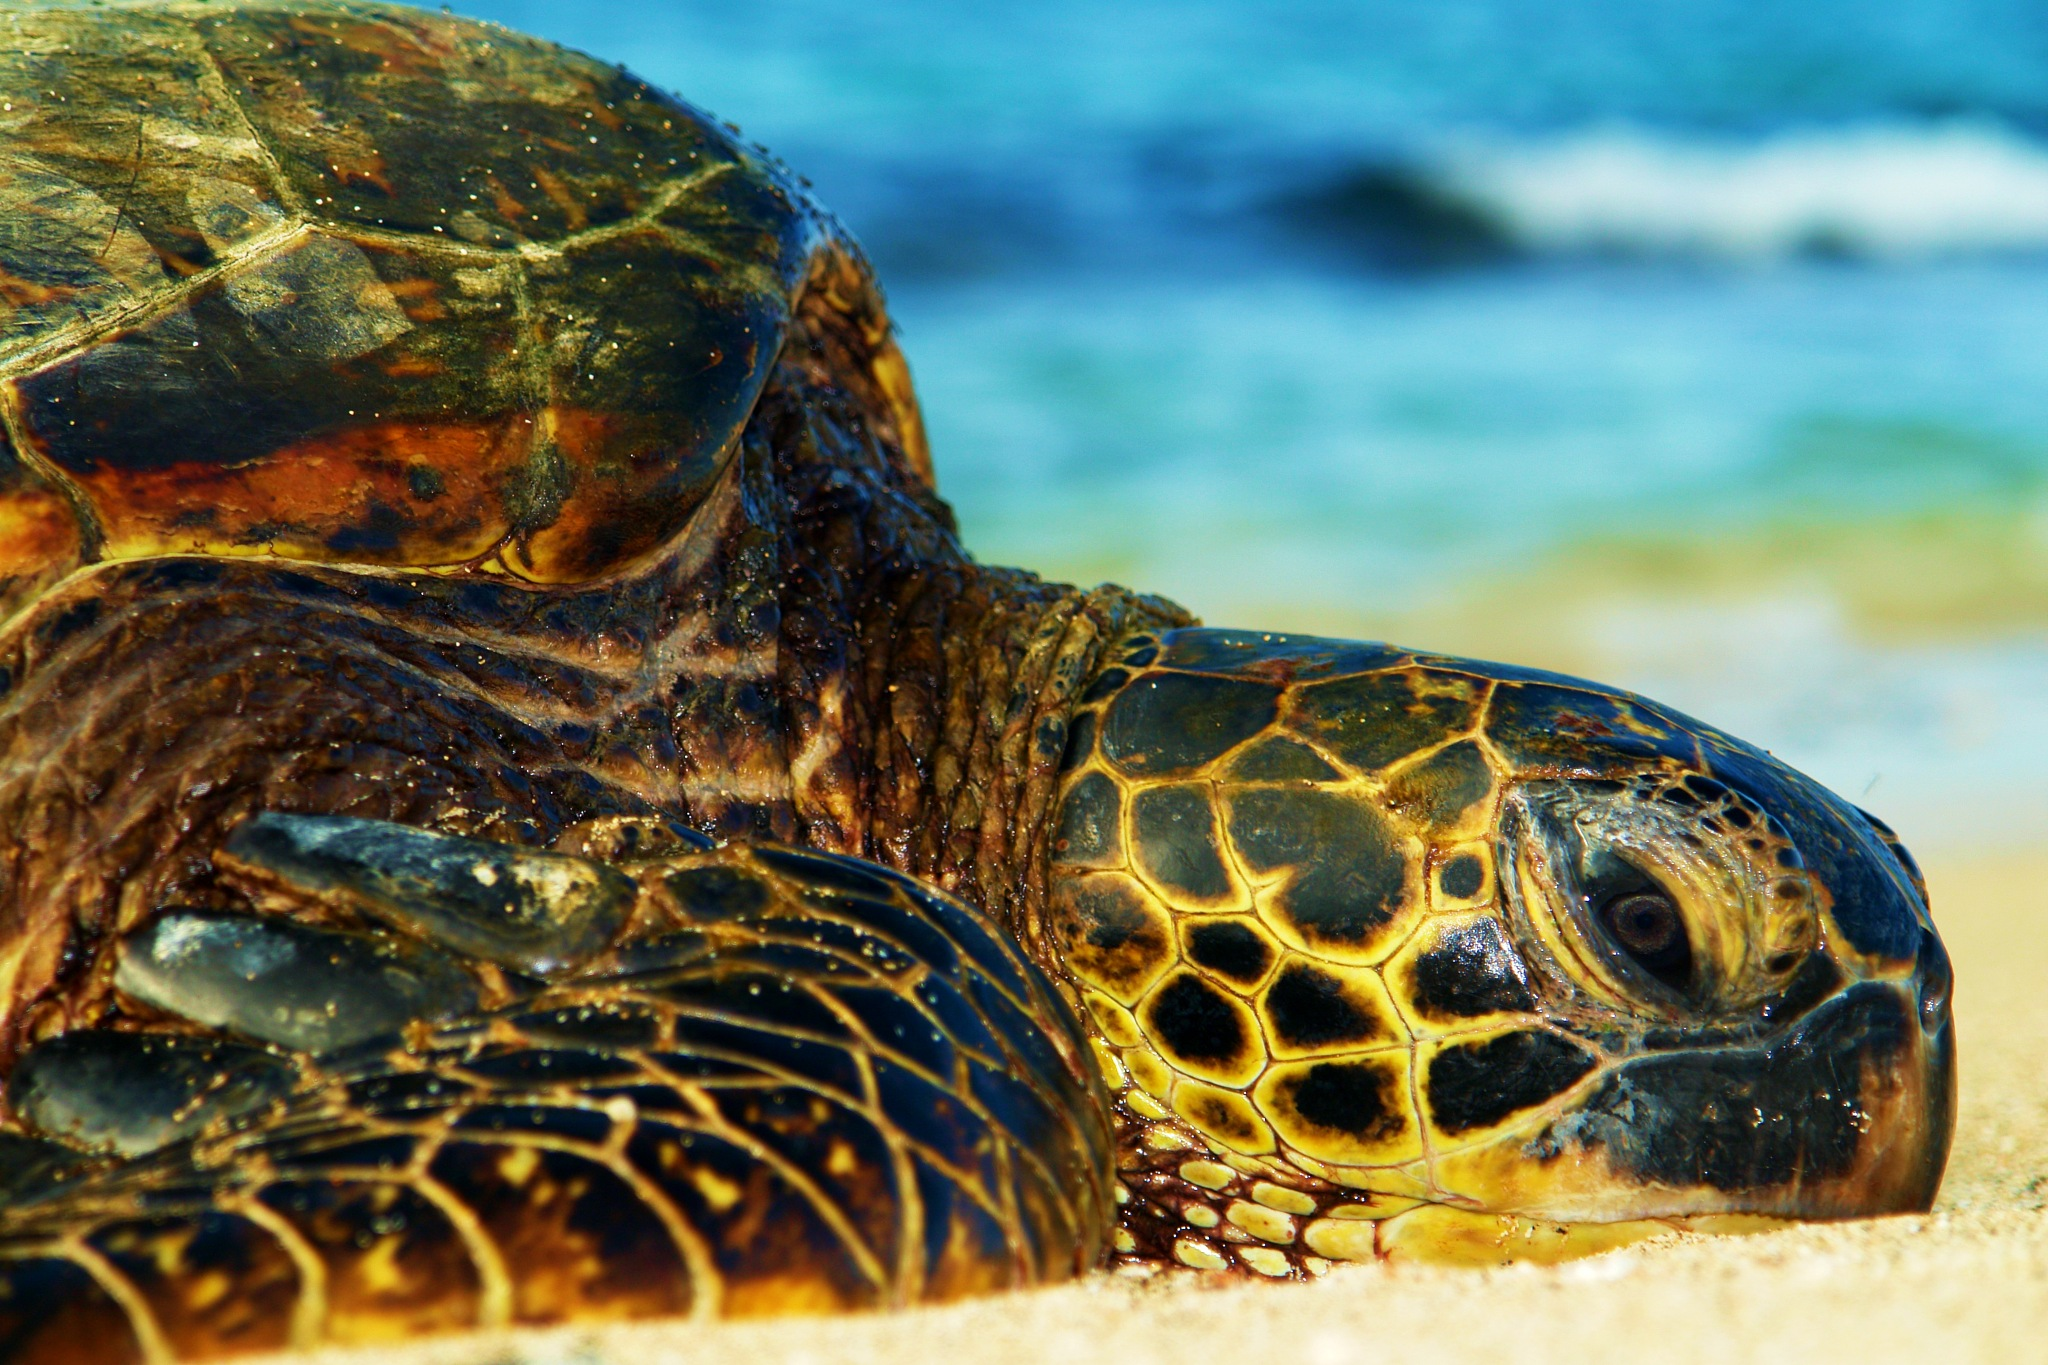 Turtle on the beach by Miloliidrifter